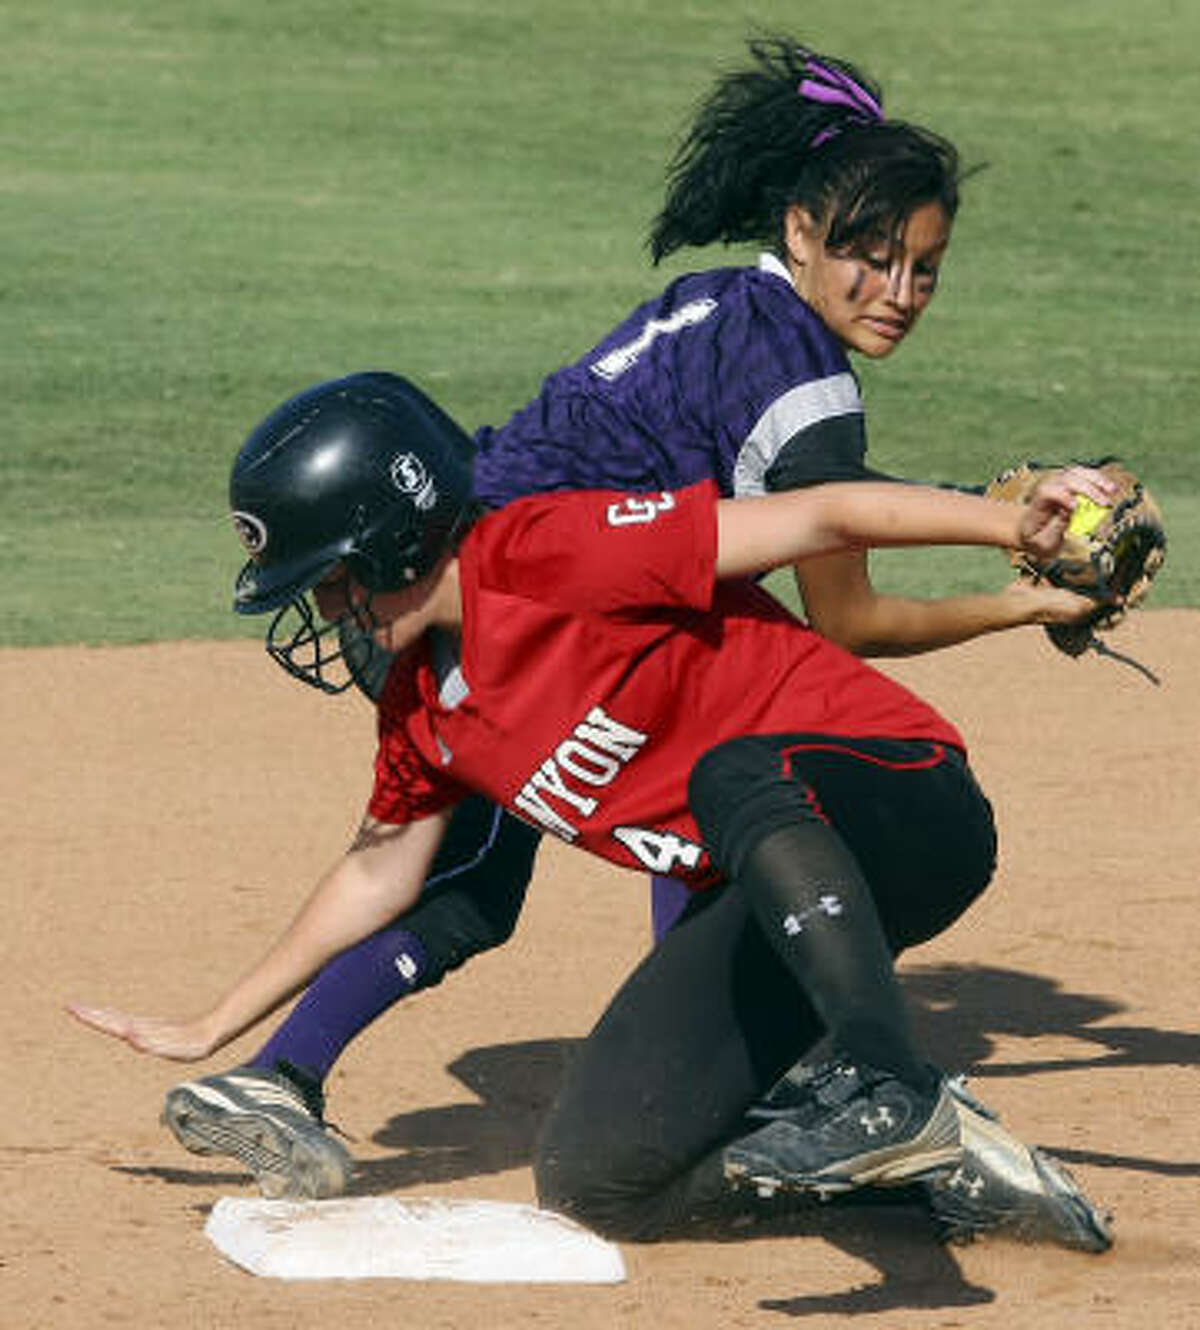 New Braunfels Canyon's Kailee Vrana is safe at second base as Angleton's Gabby Banda applies the tag late.